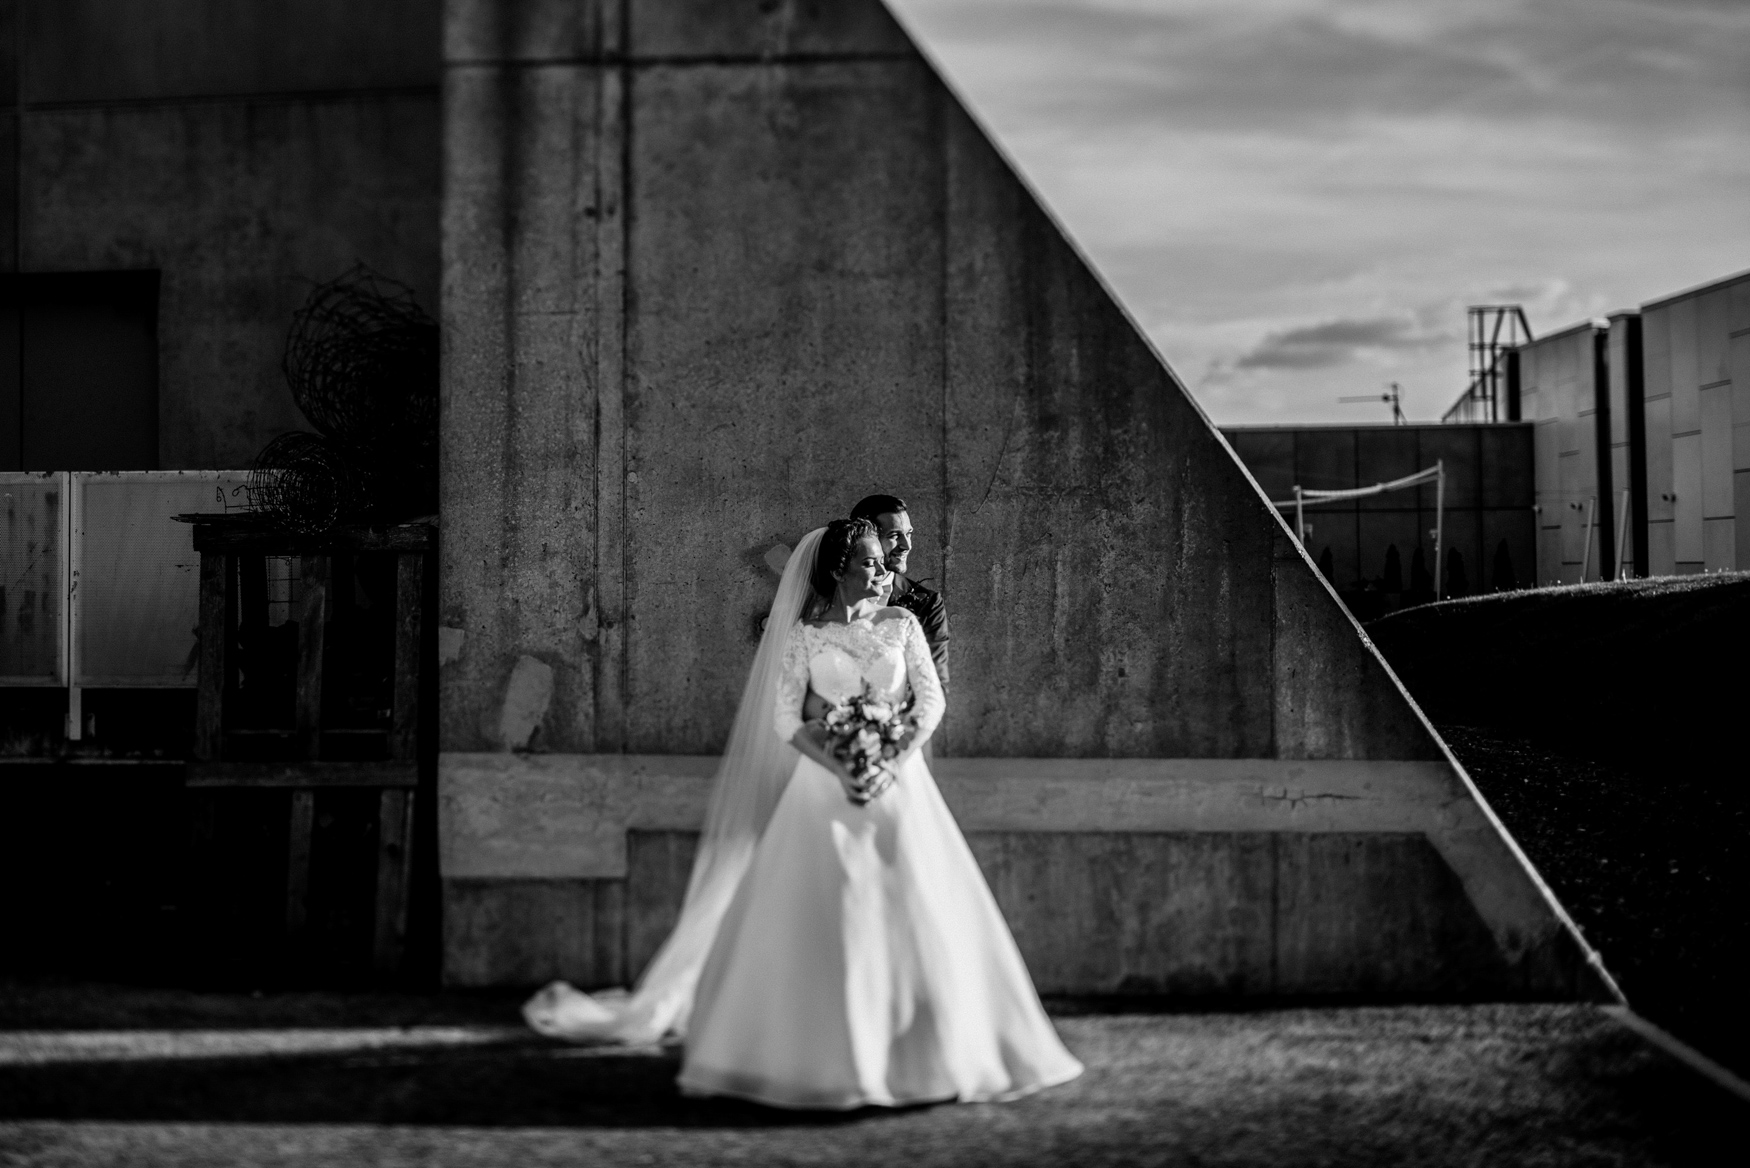 bestof2017_082 black and white wedding portrait.jpg